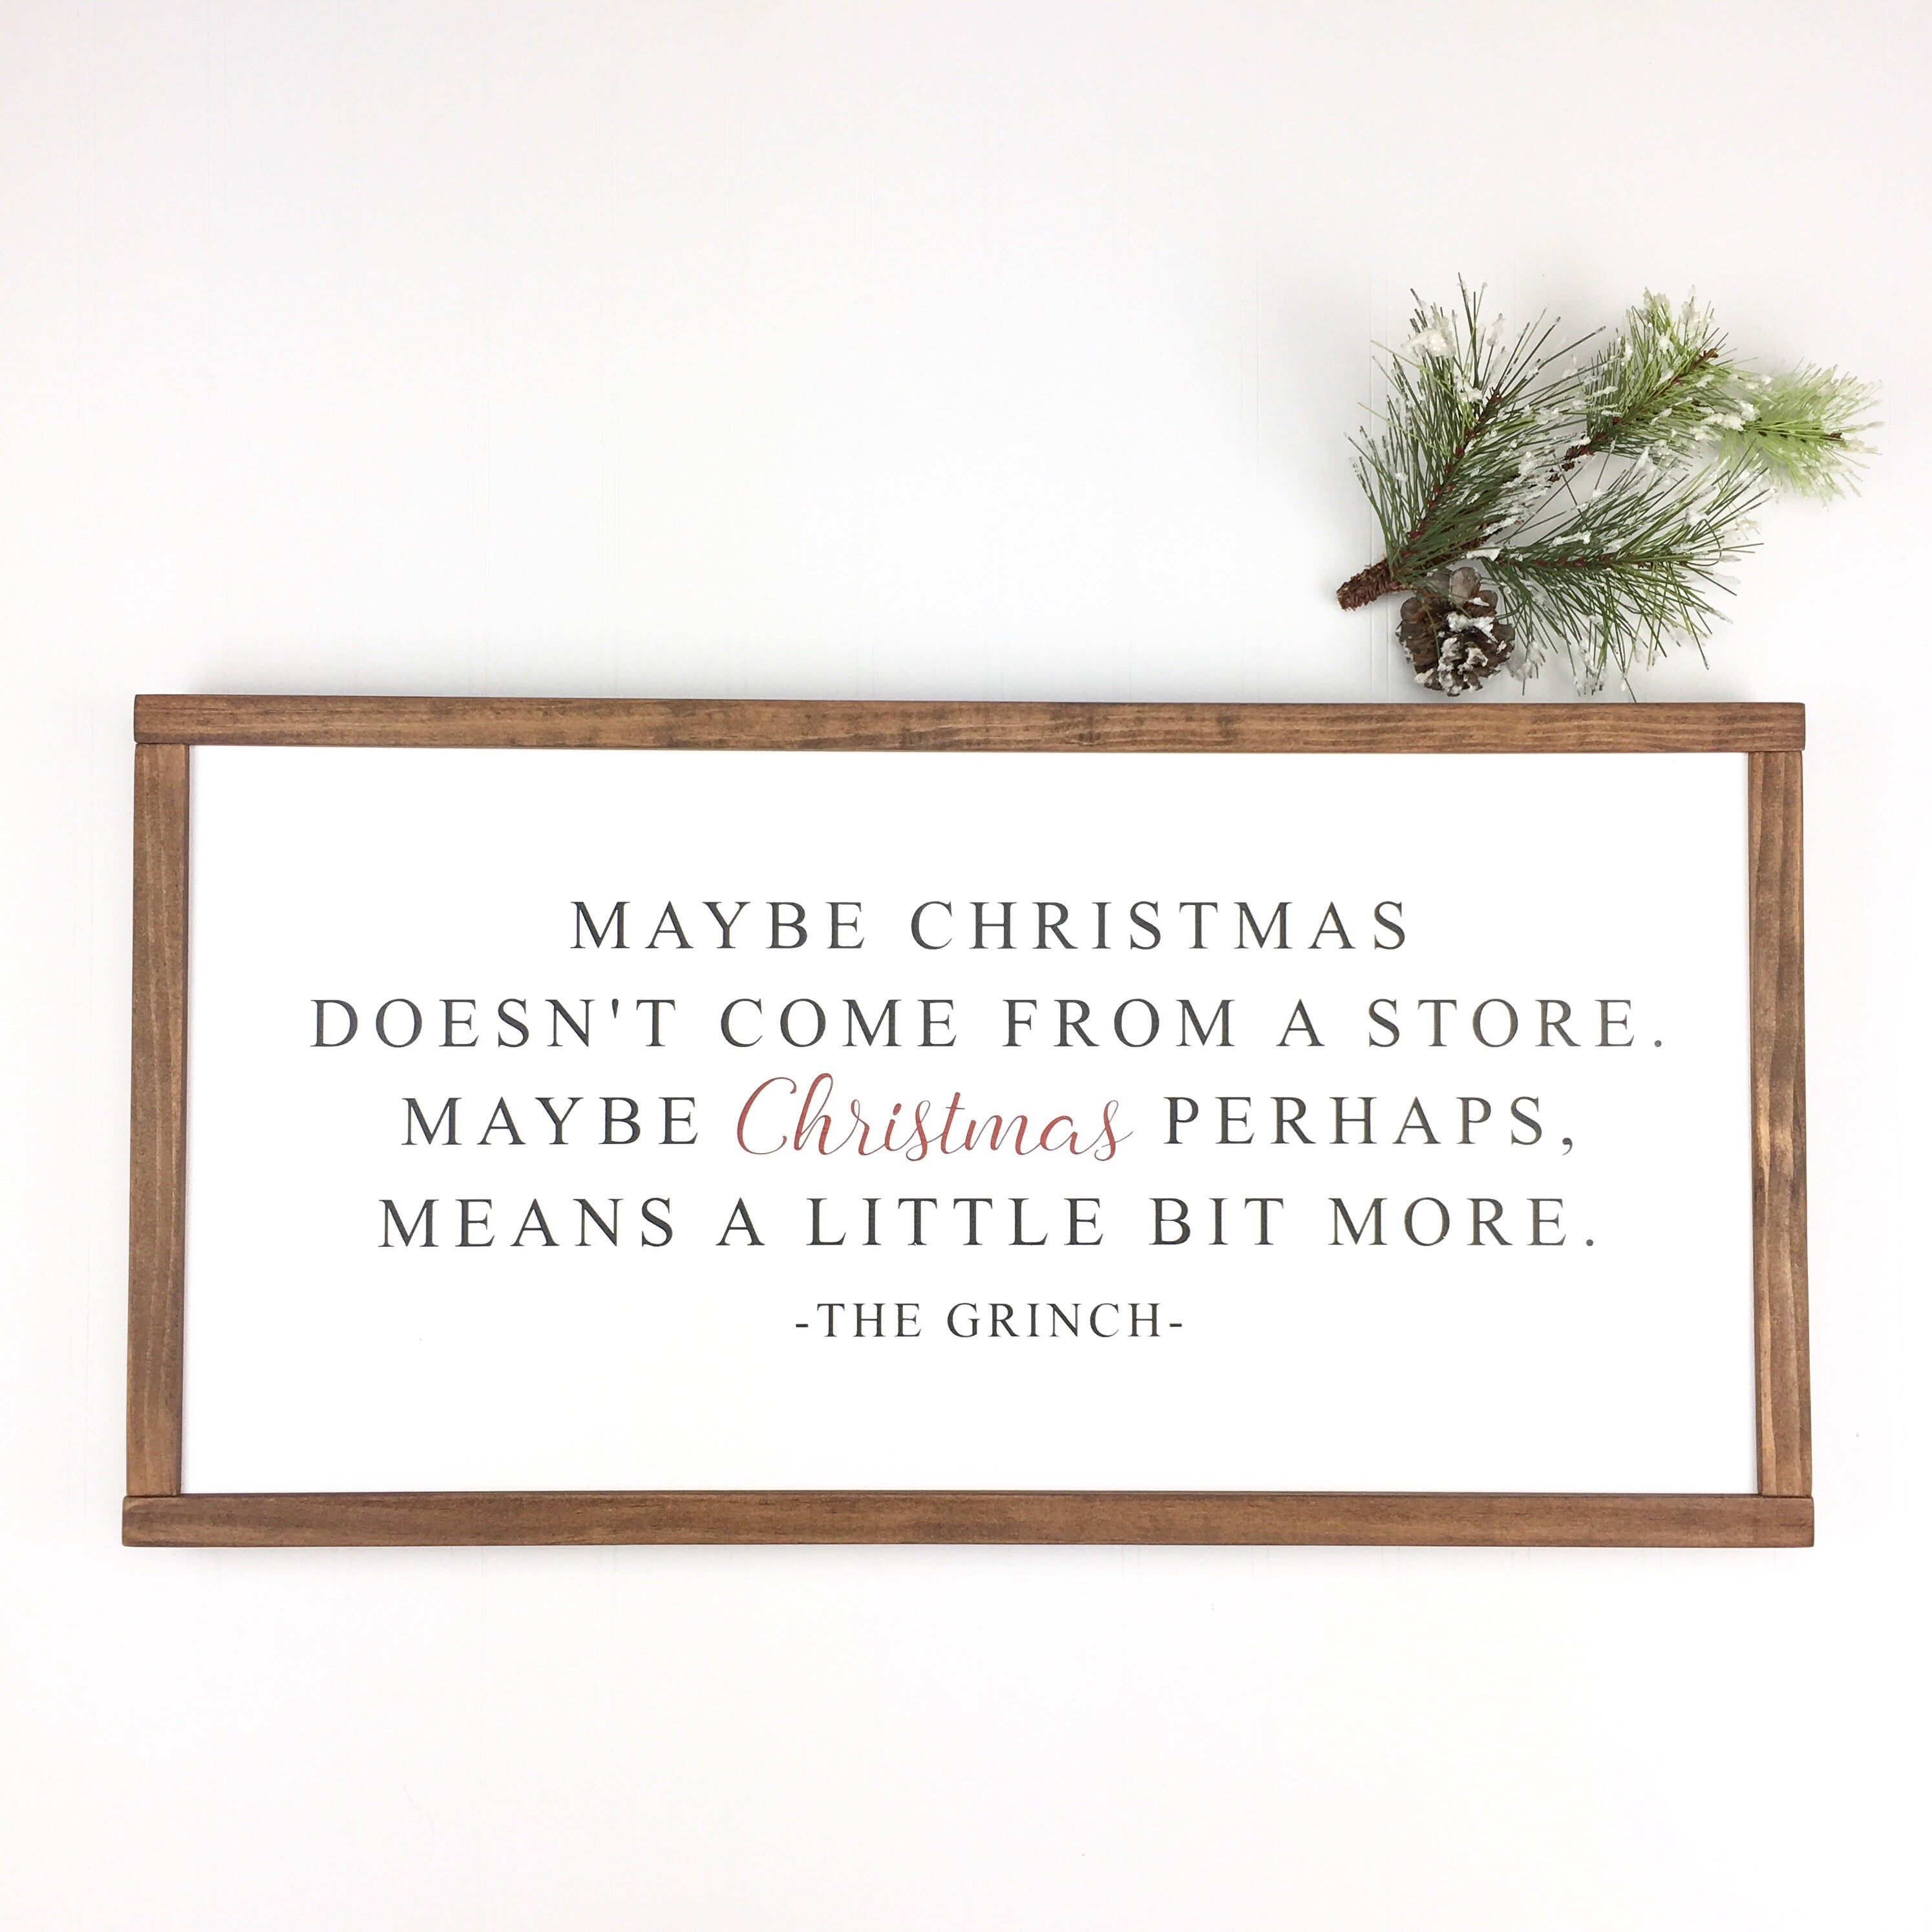 Maybe Christmas Doesn't Come From A Store Sign